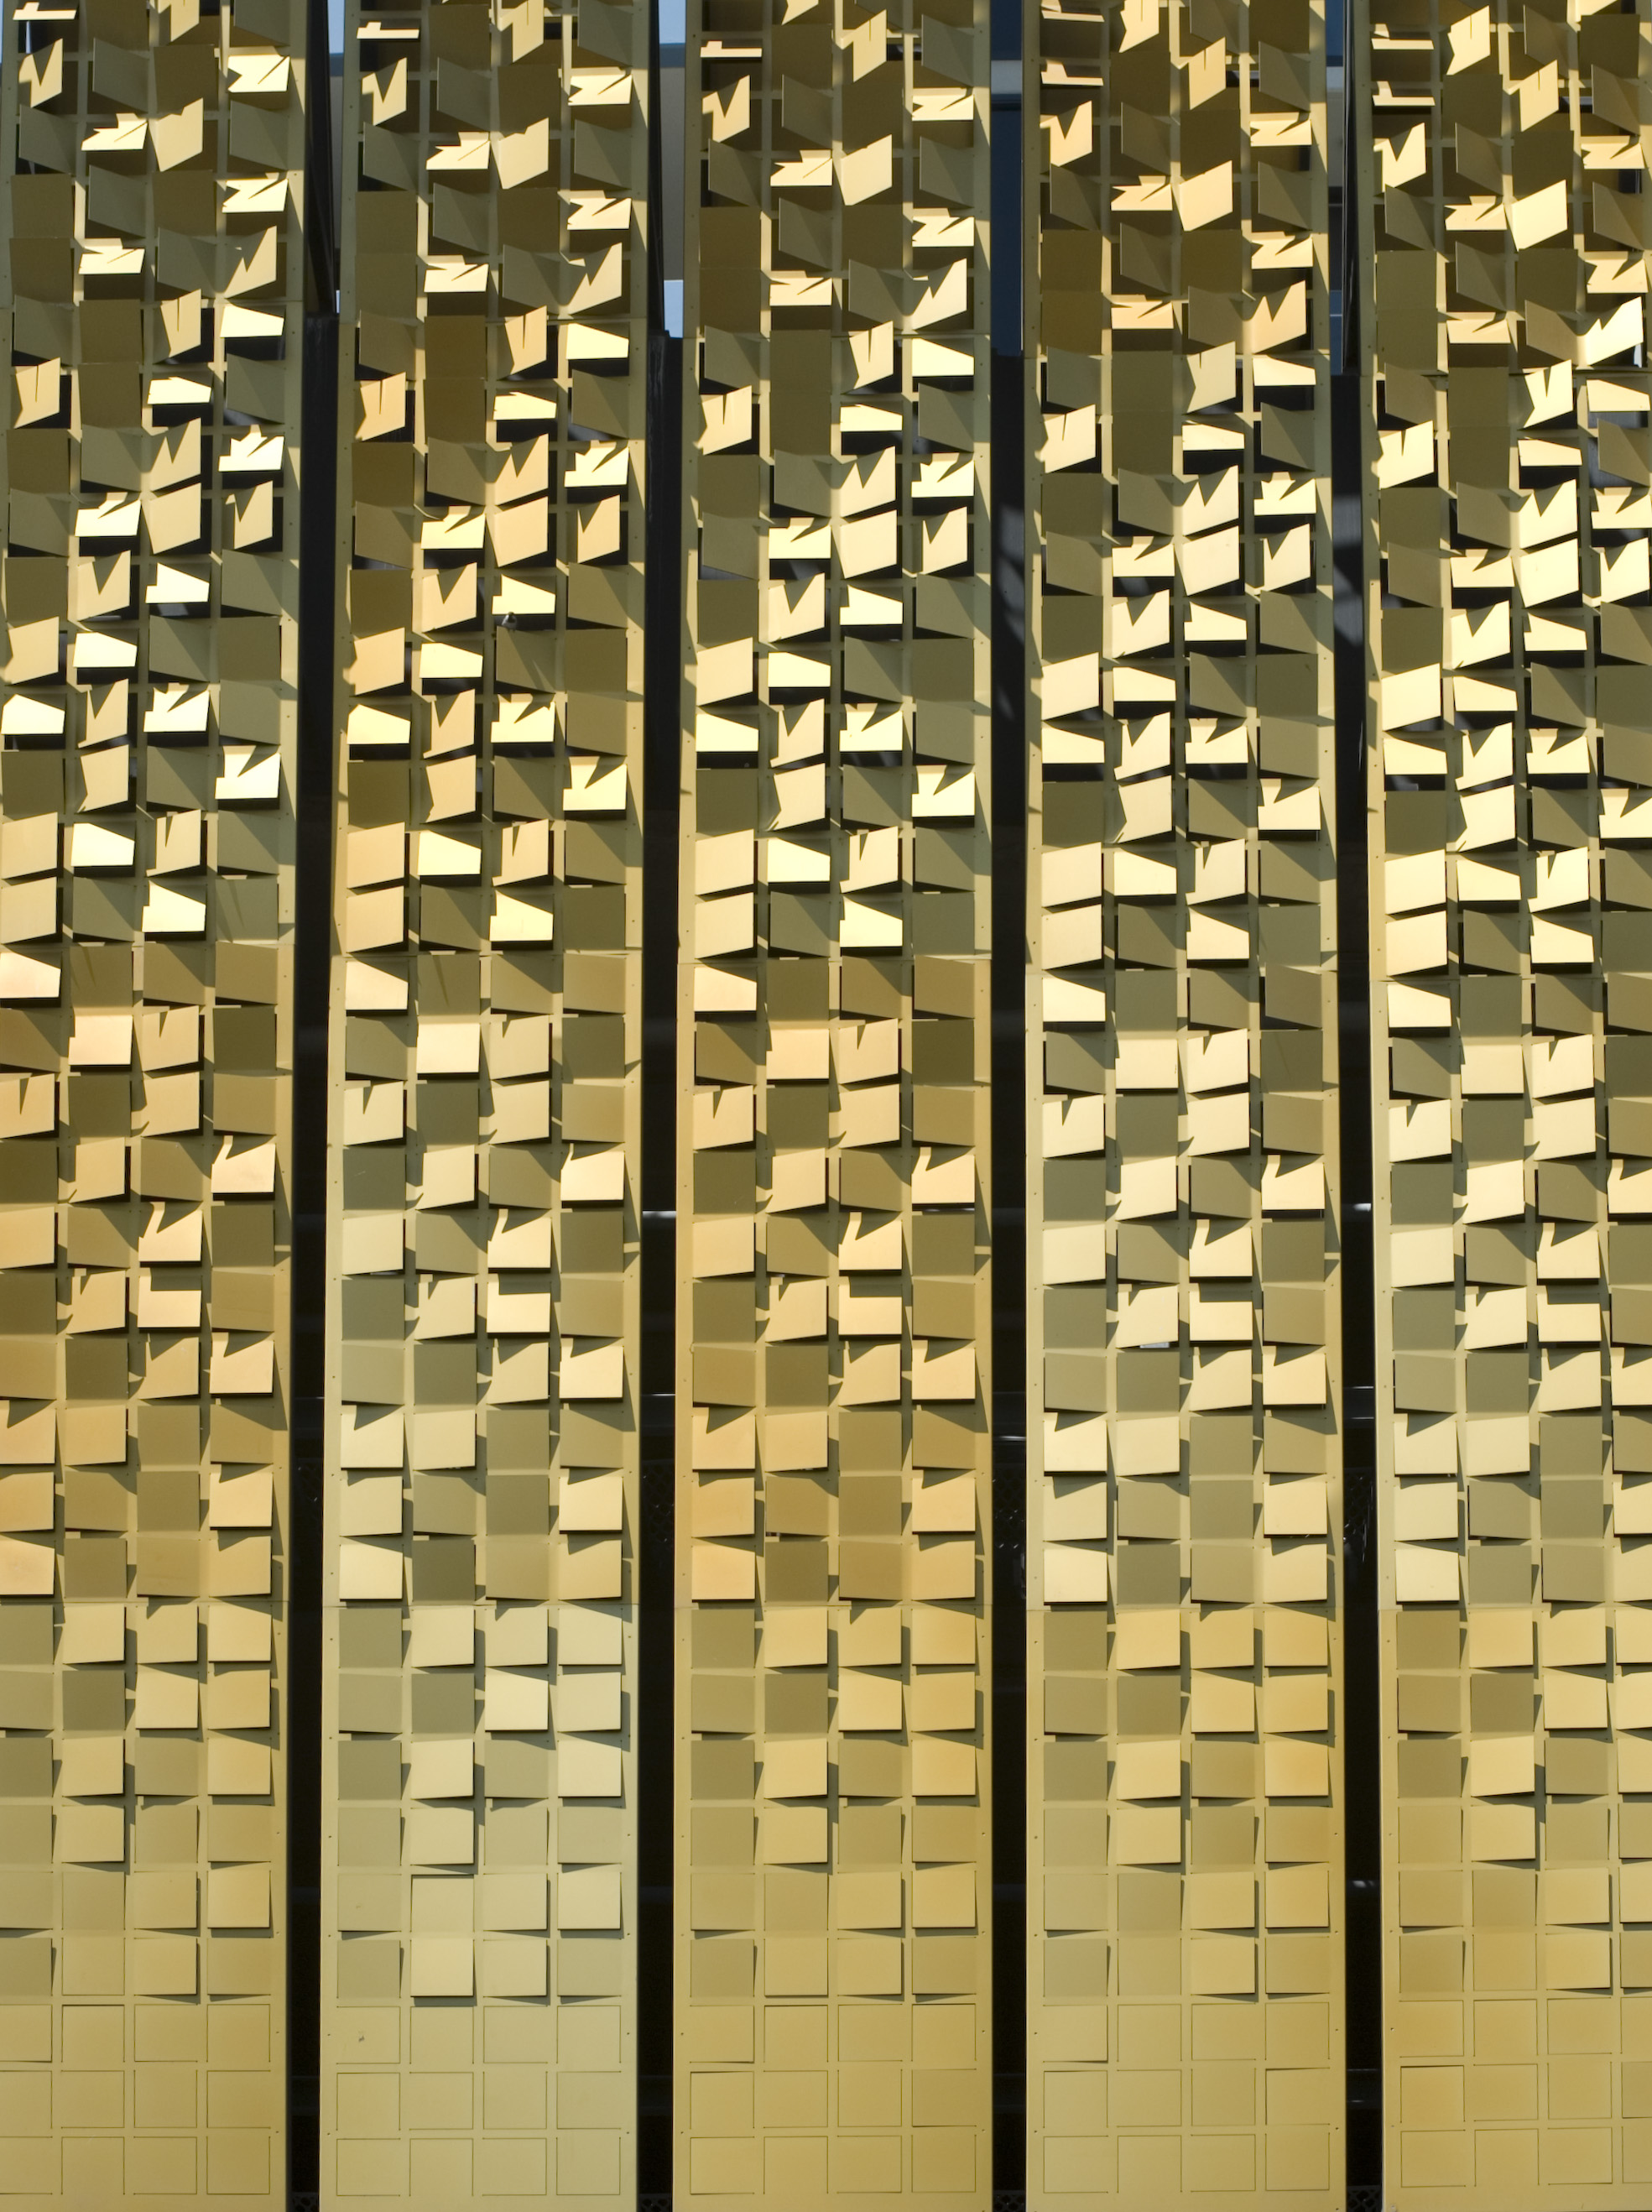 Gold Screen Free Backgrounds And Textures Cr103 Com